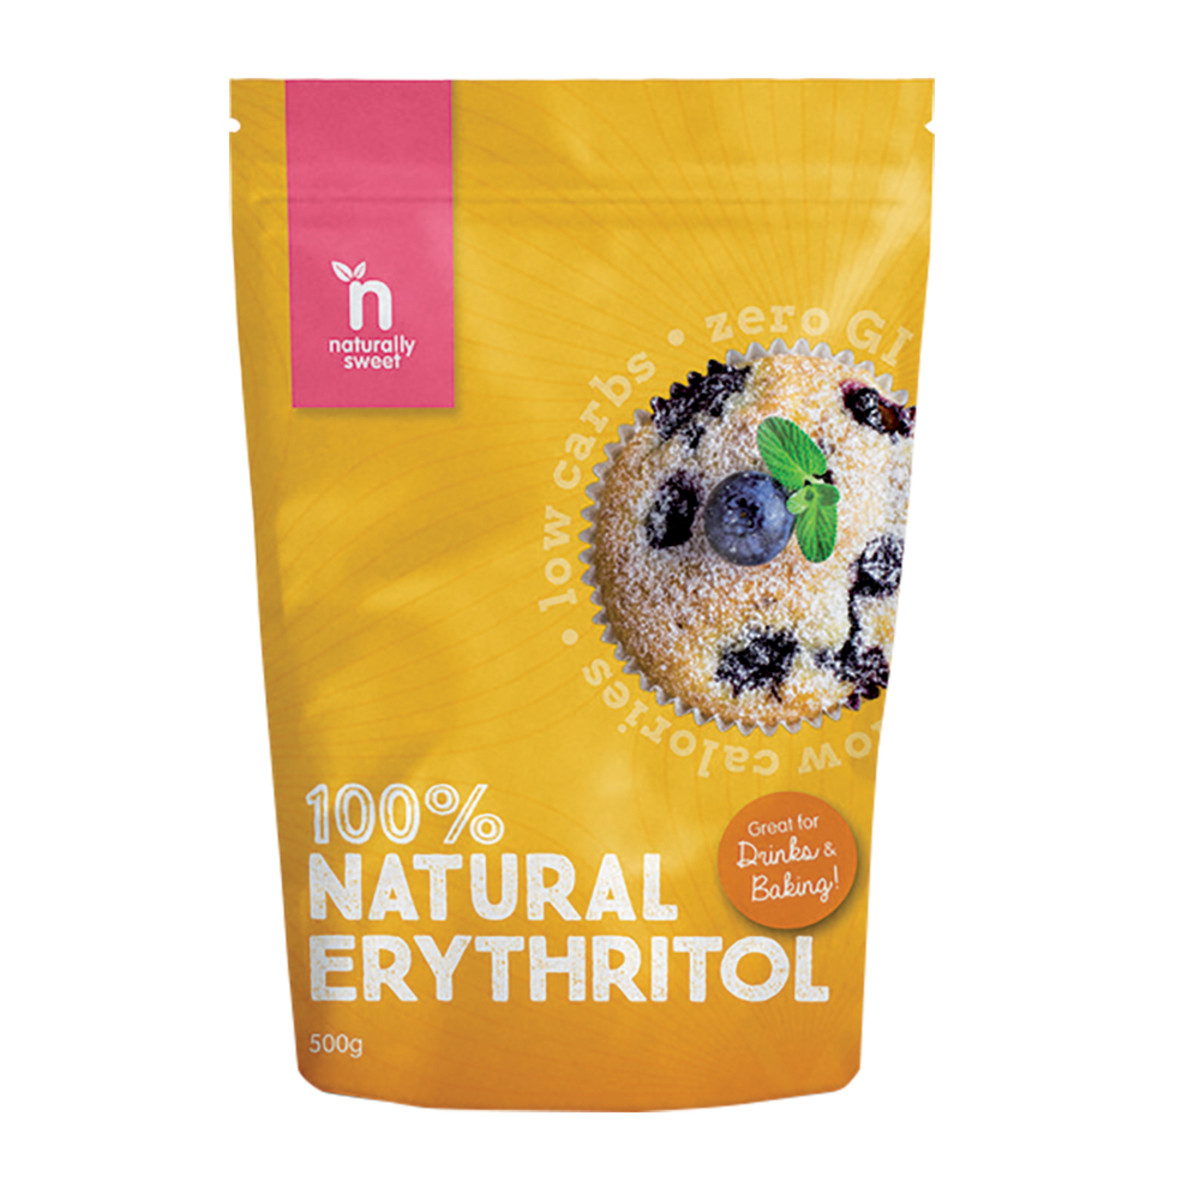 NATURALLY SWEET ERYTHRITOL 500G